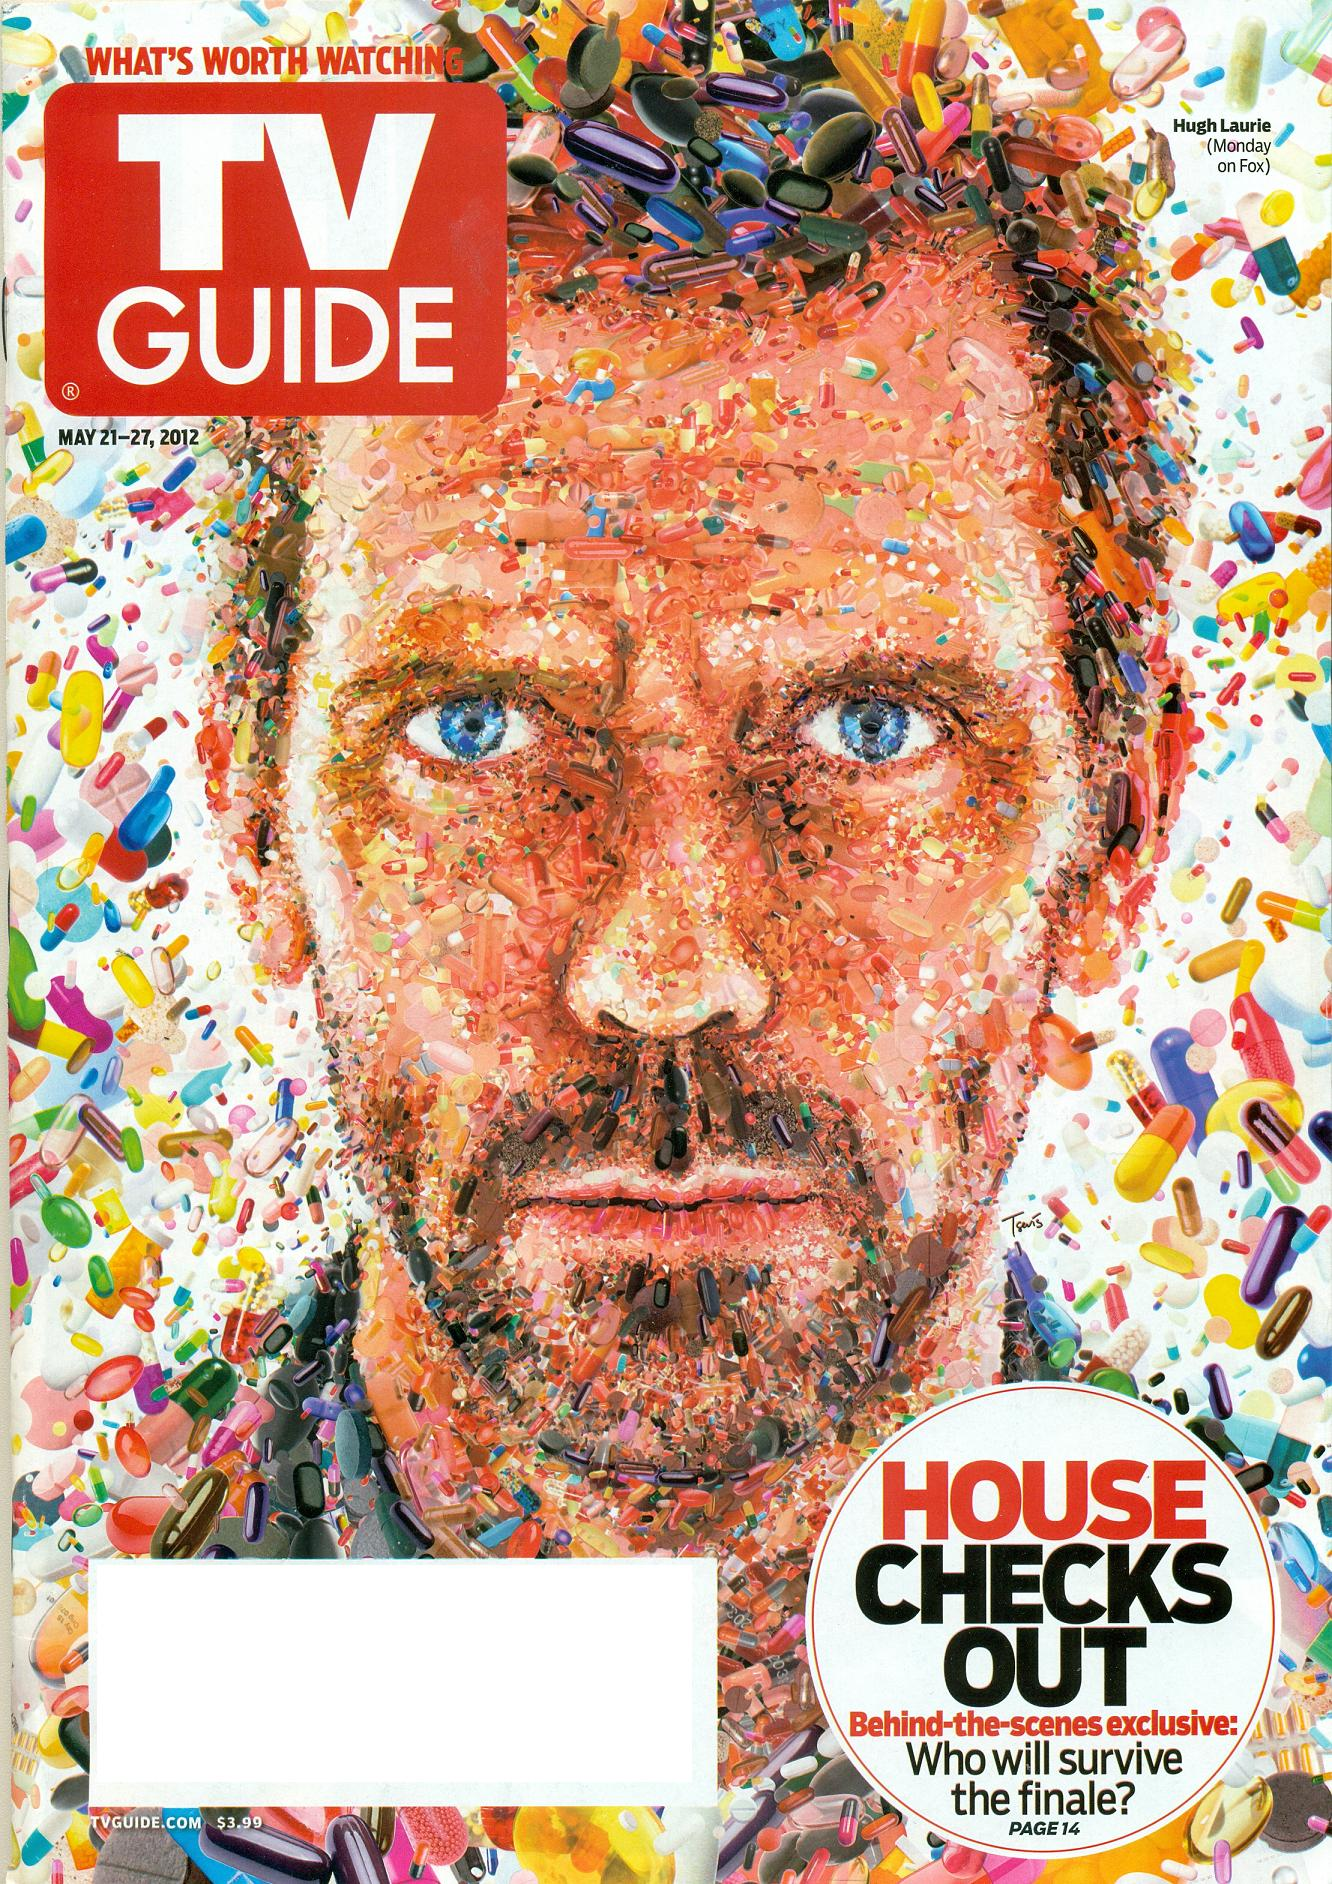 House TV Guide Cover Part I